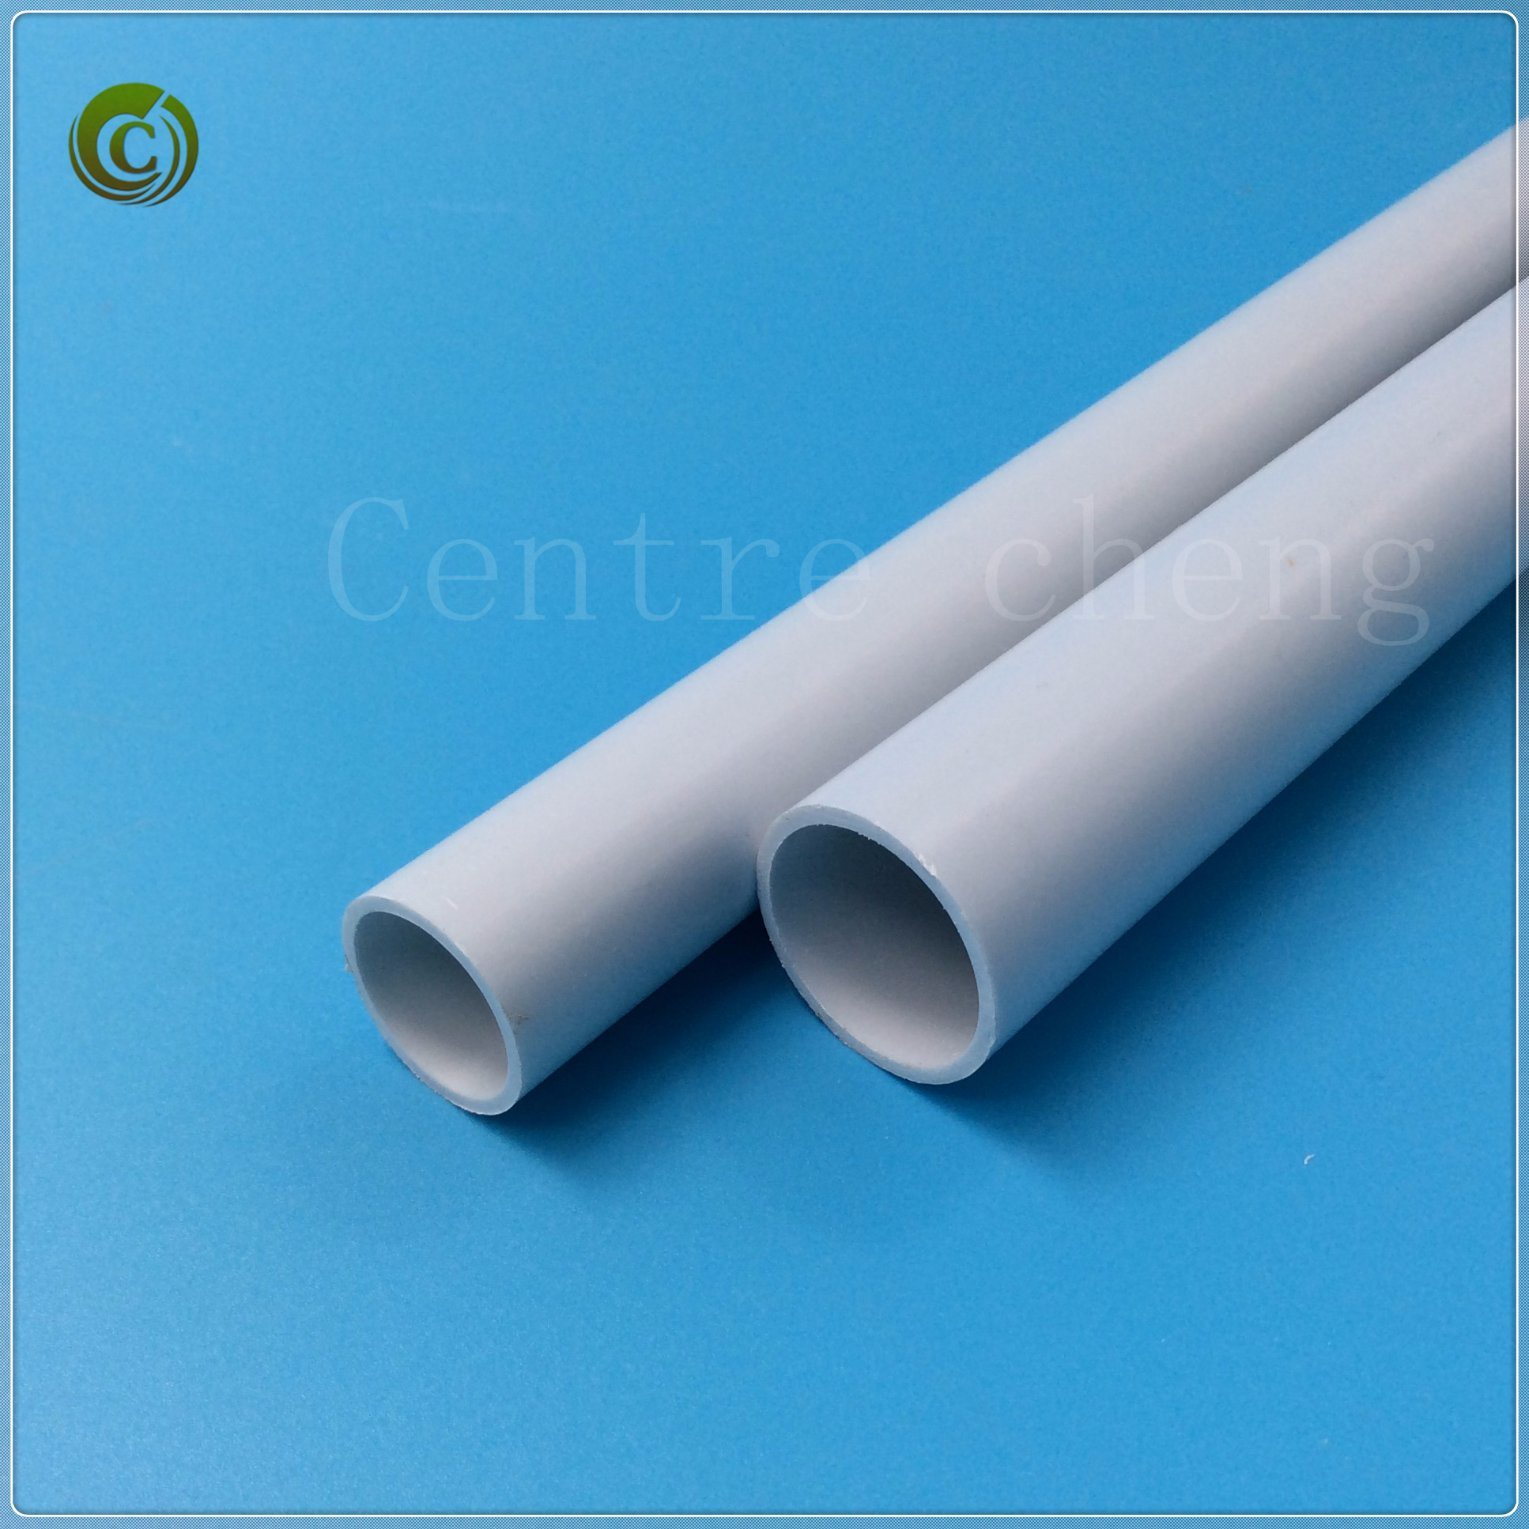 china 2018 shan best price pvc electrical pipe fitting conduit rh centrecheng en made in china com Electrical Wiring Box Electrical Channel Conduit